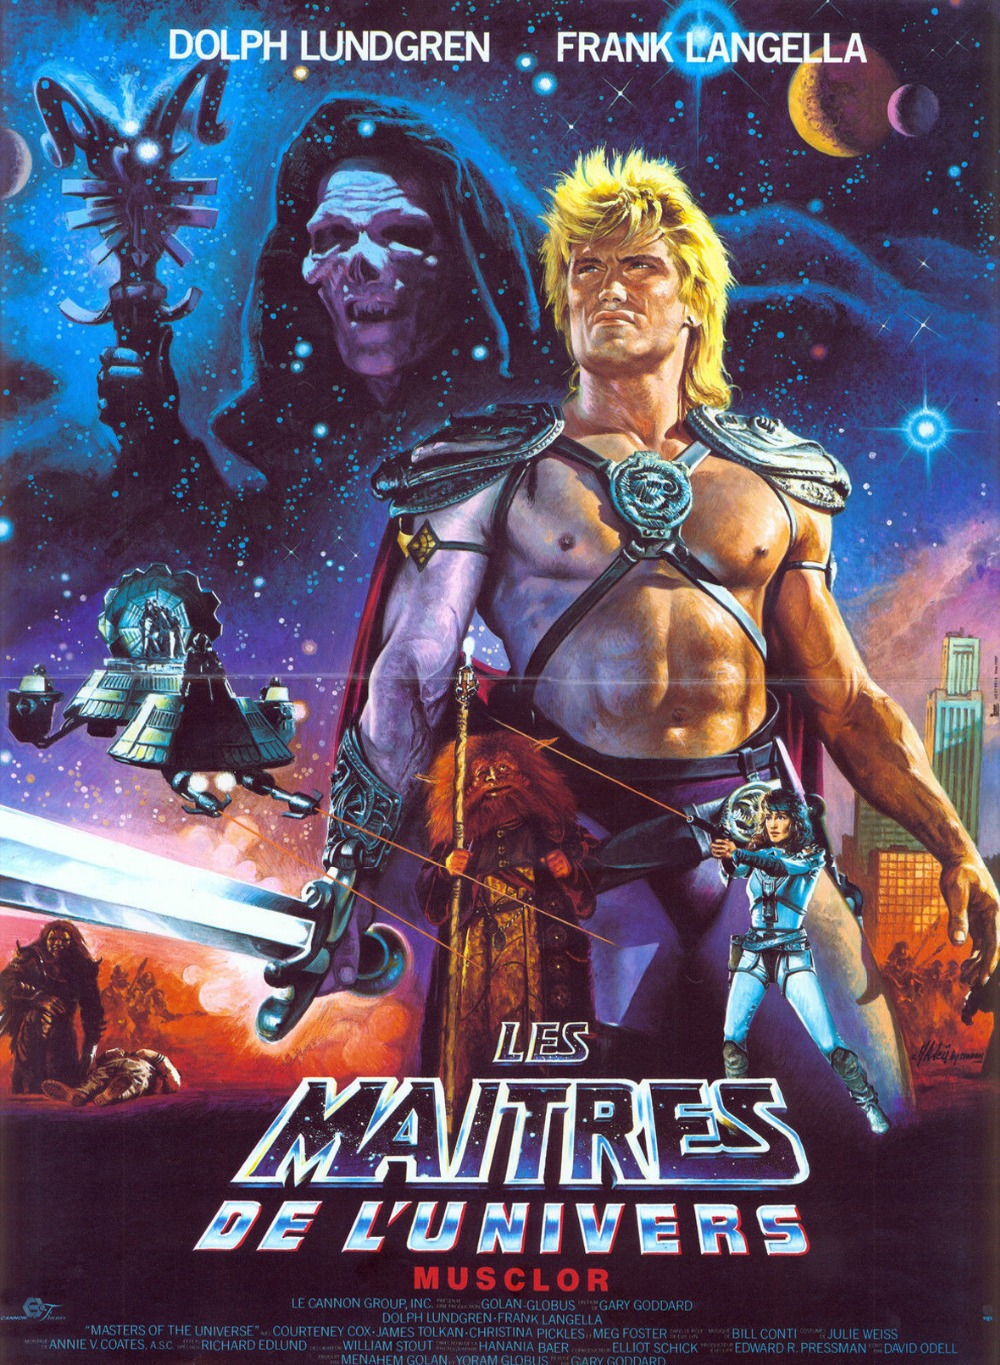 masters of the universe movie poster 1987 he man dolph